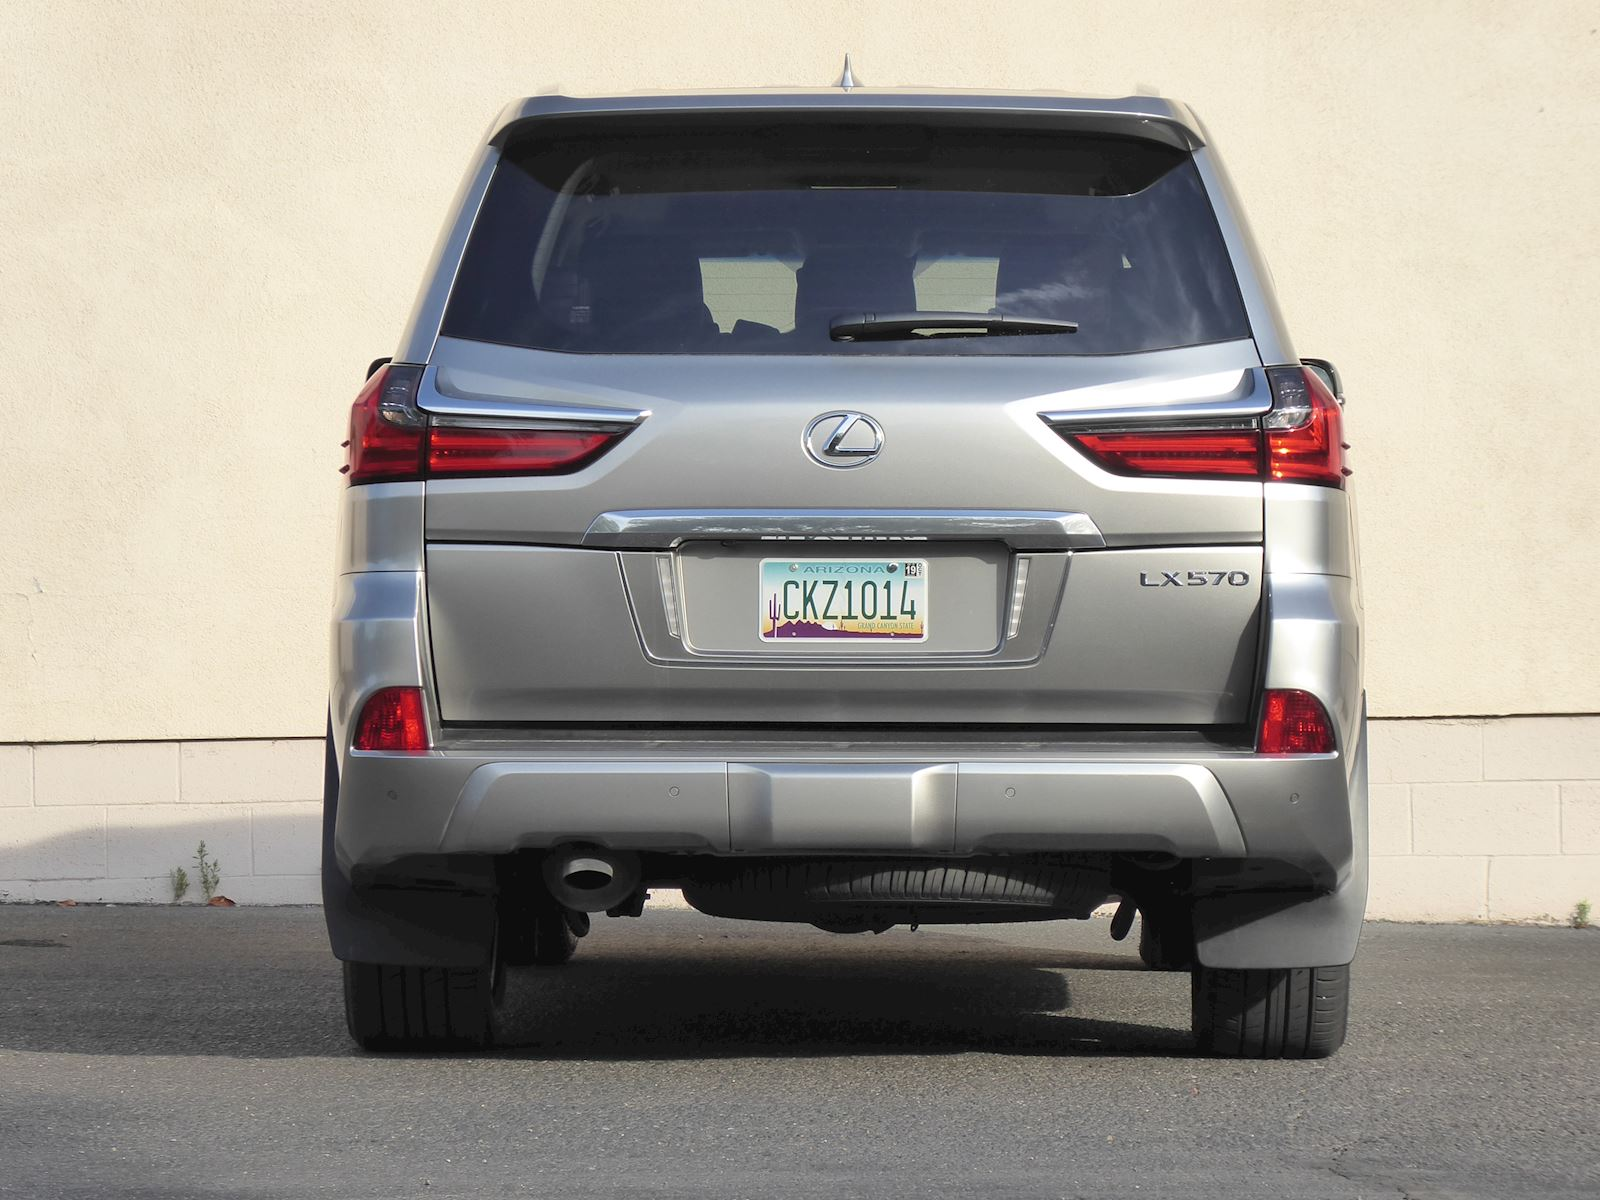 2020 Lexus LX 570 Rear View Mugshot Photo